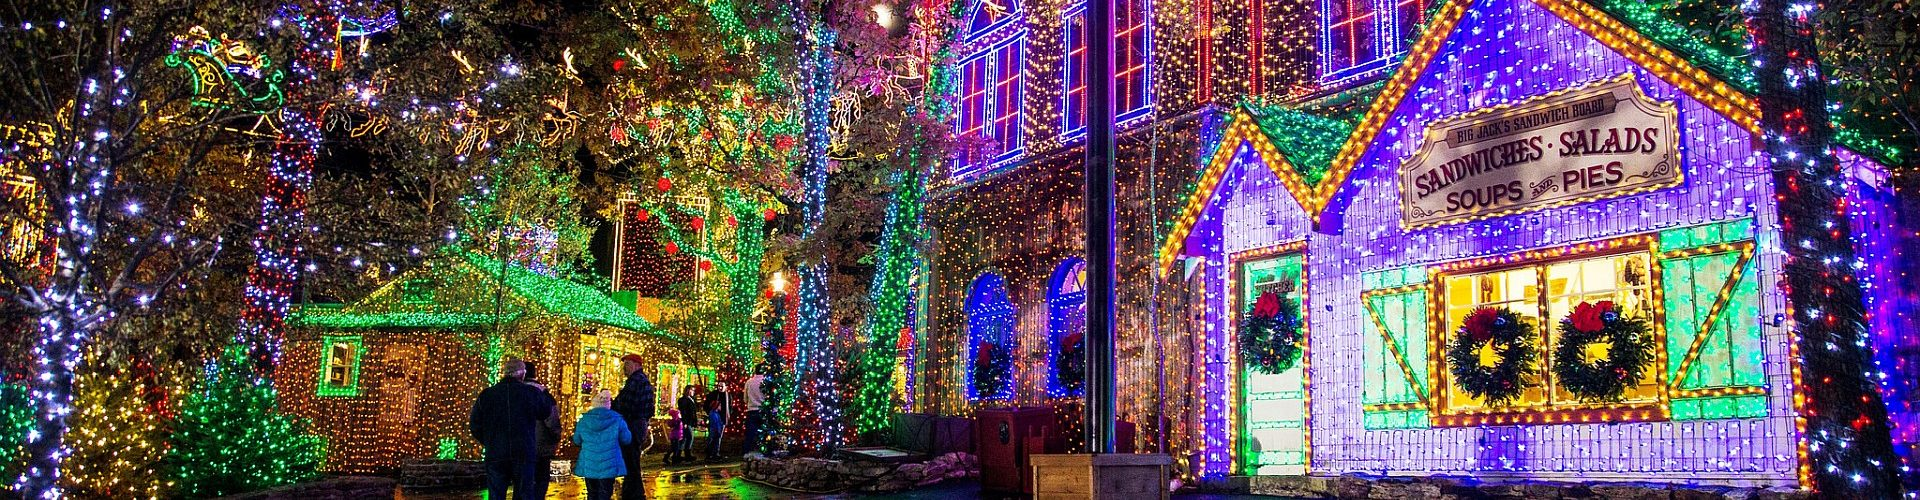 Silver Dollar City's Christmas at Midtown in Branson, MO